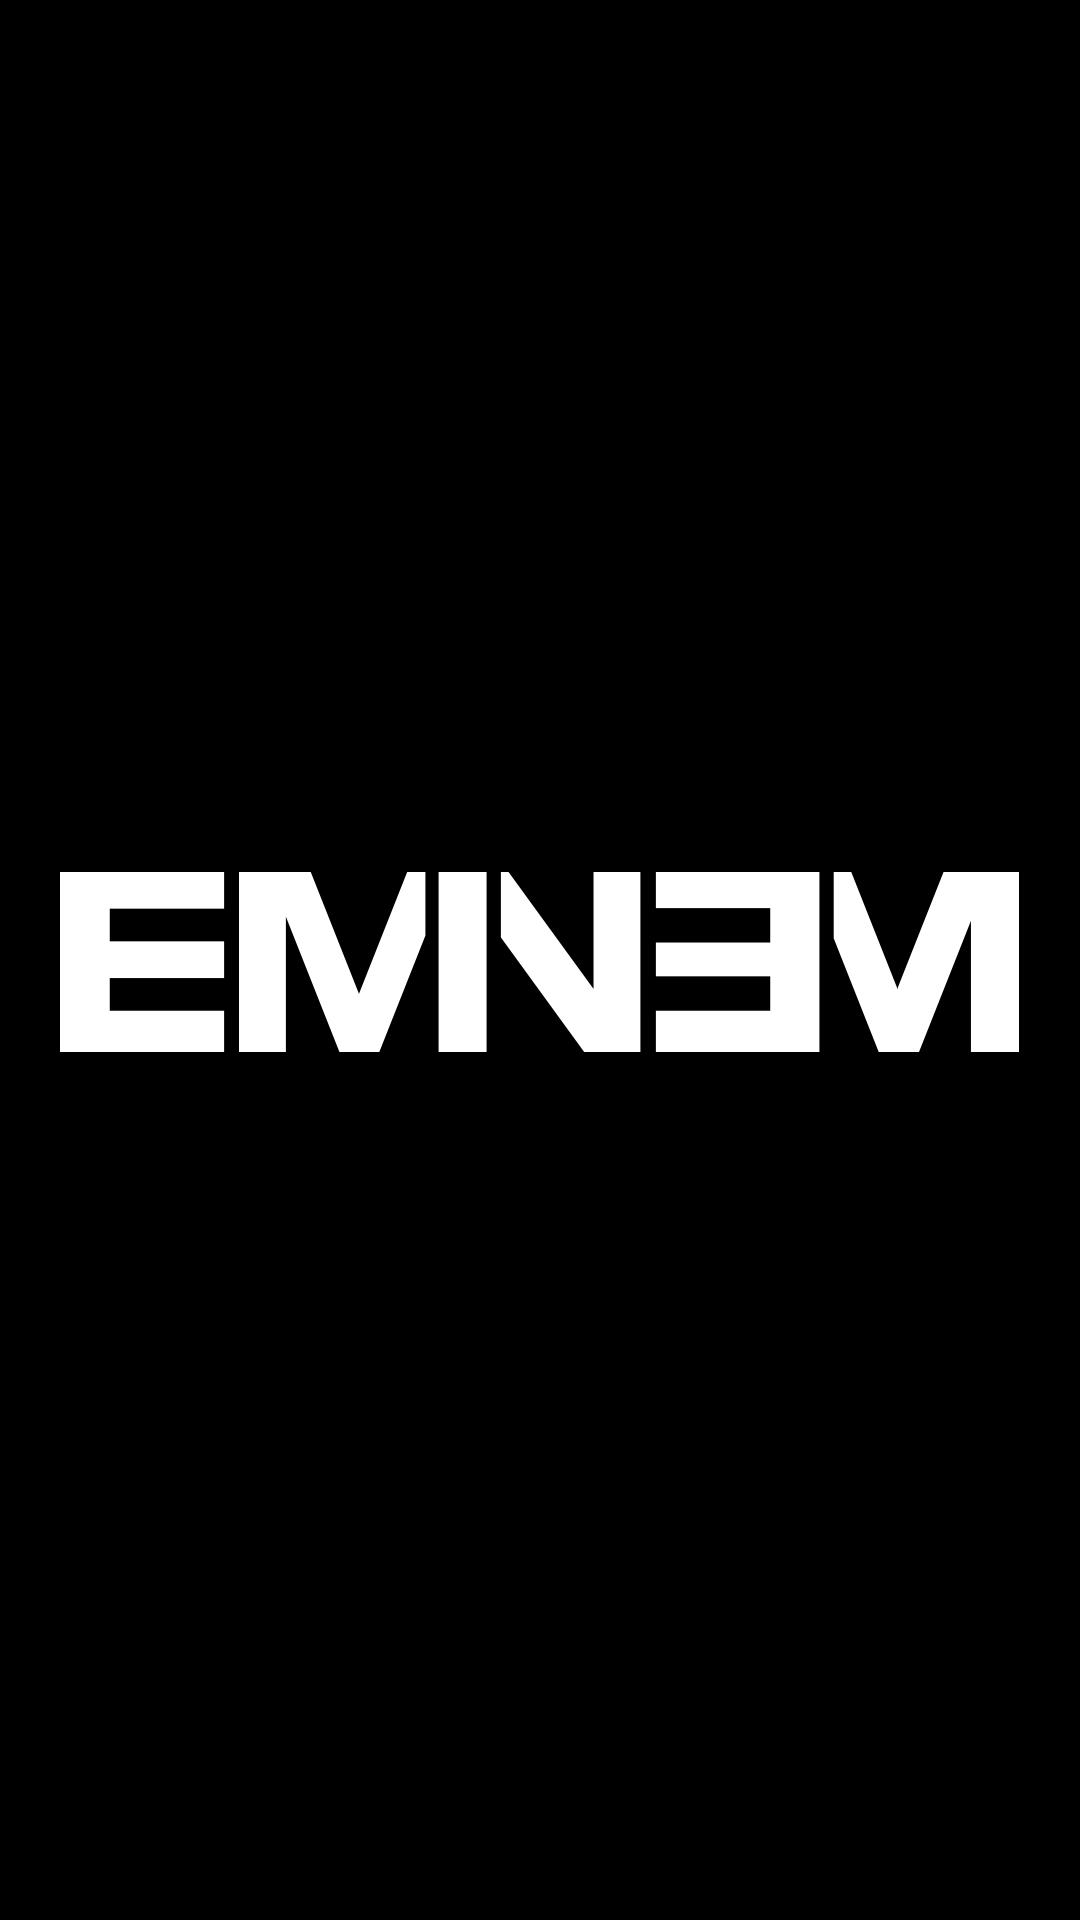 20 Eminem Logo Wallpapers On Wallpapersafari